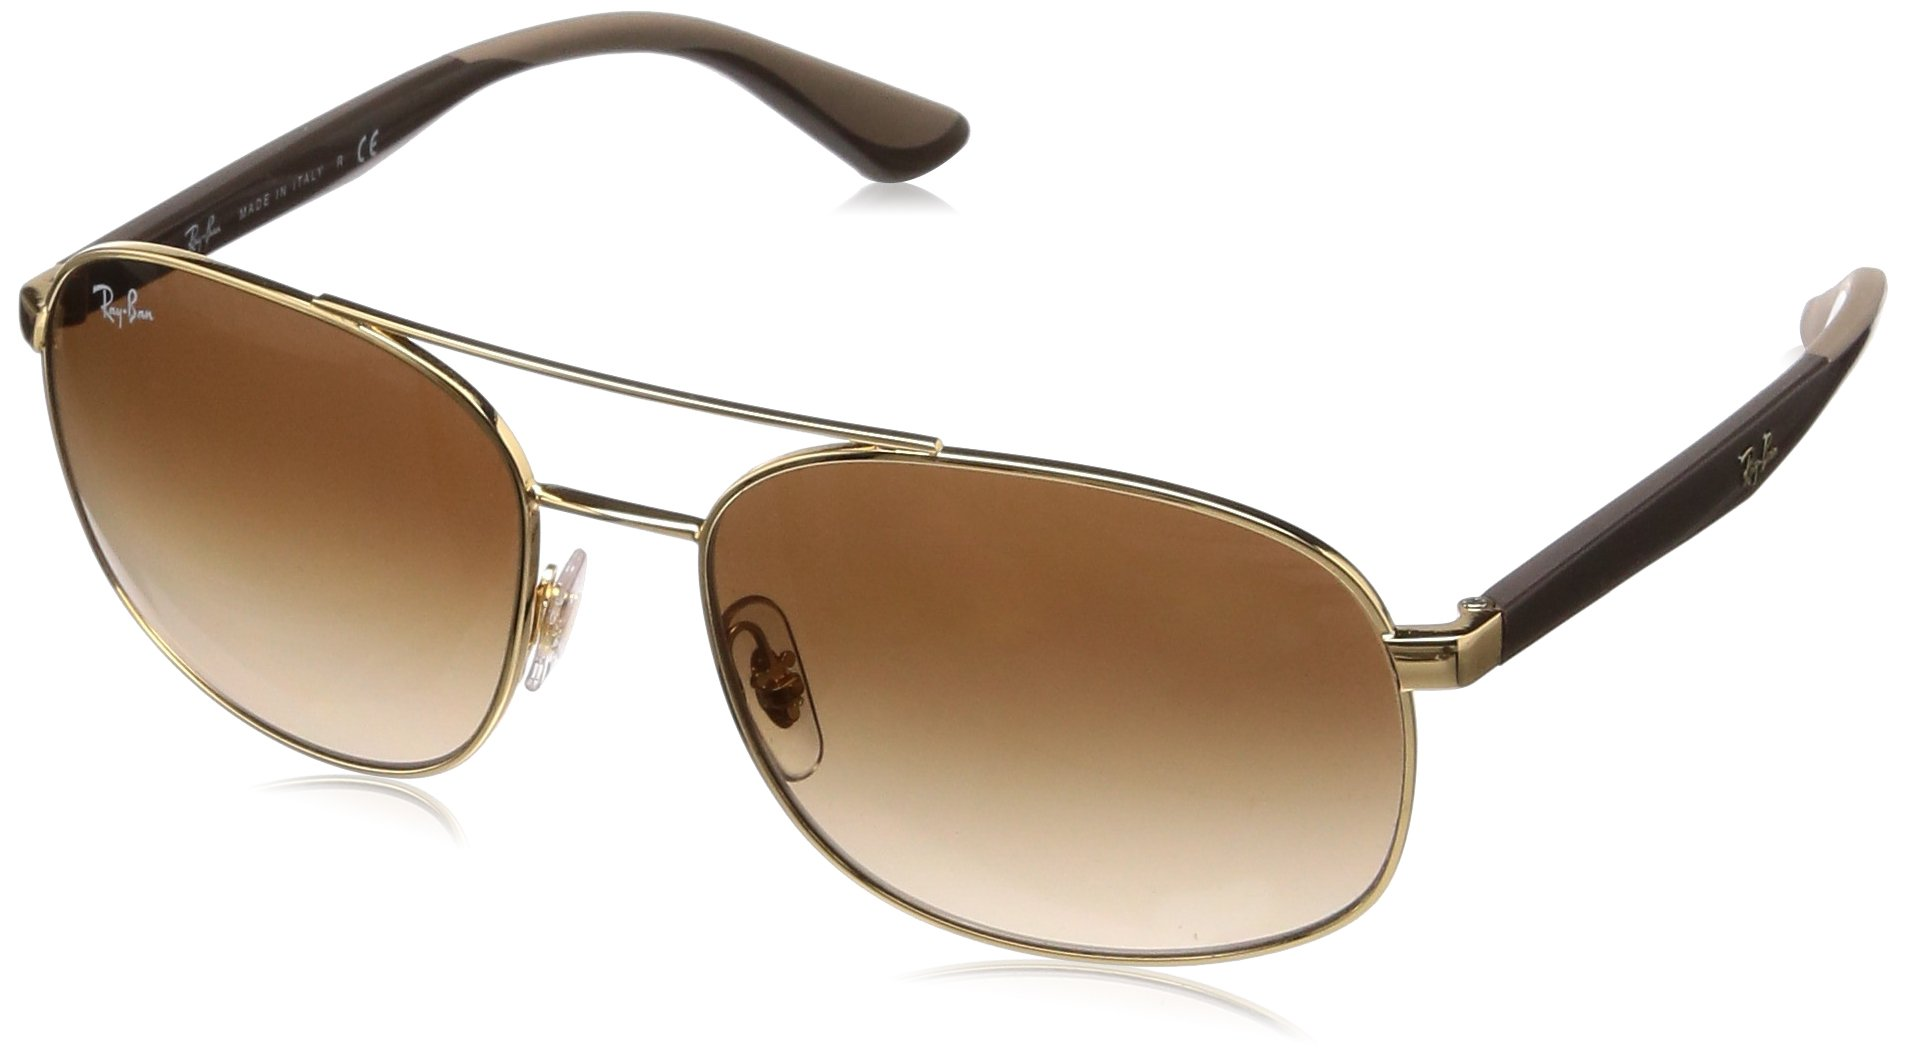 RAY-BAN RB3593 Square Metal Sunglasses, Gold/Brown Gradient, 58 mm by RAY-BAN